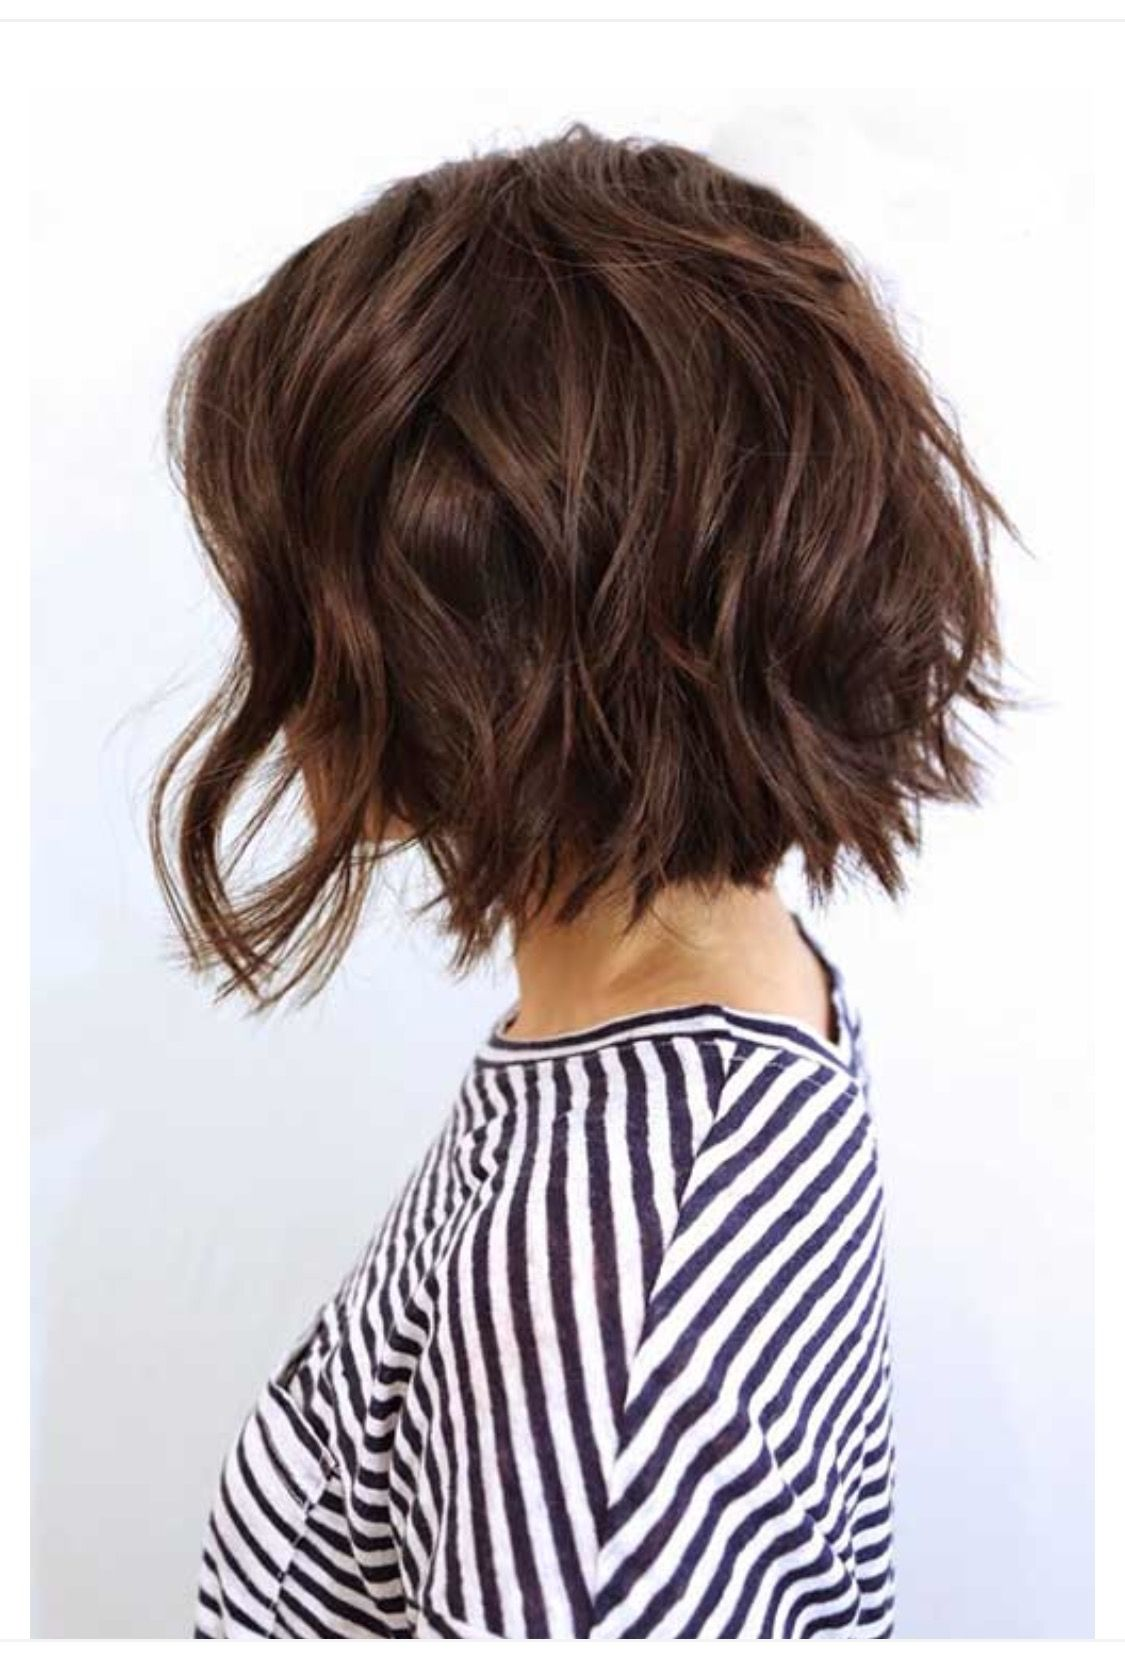 Pin by christina mohr on hair and beauty pinterest short hair